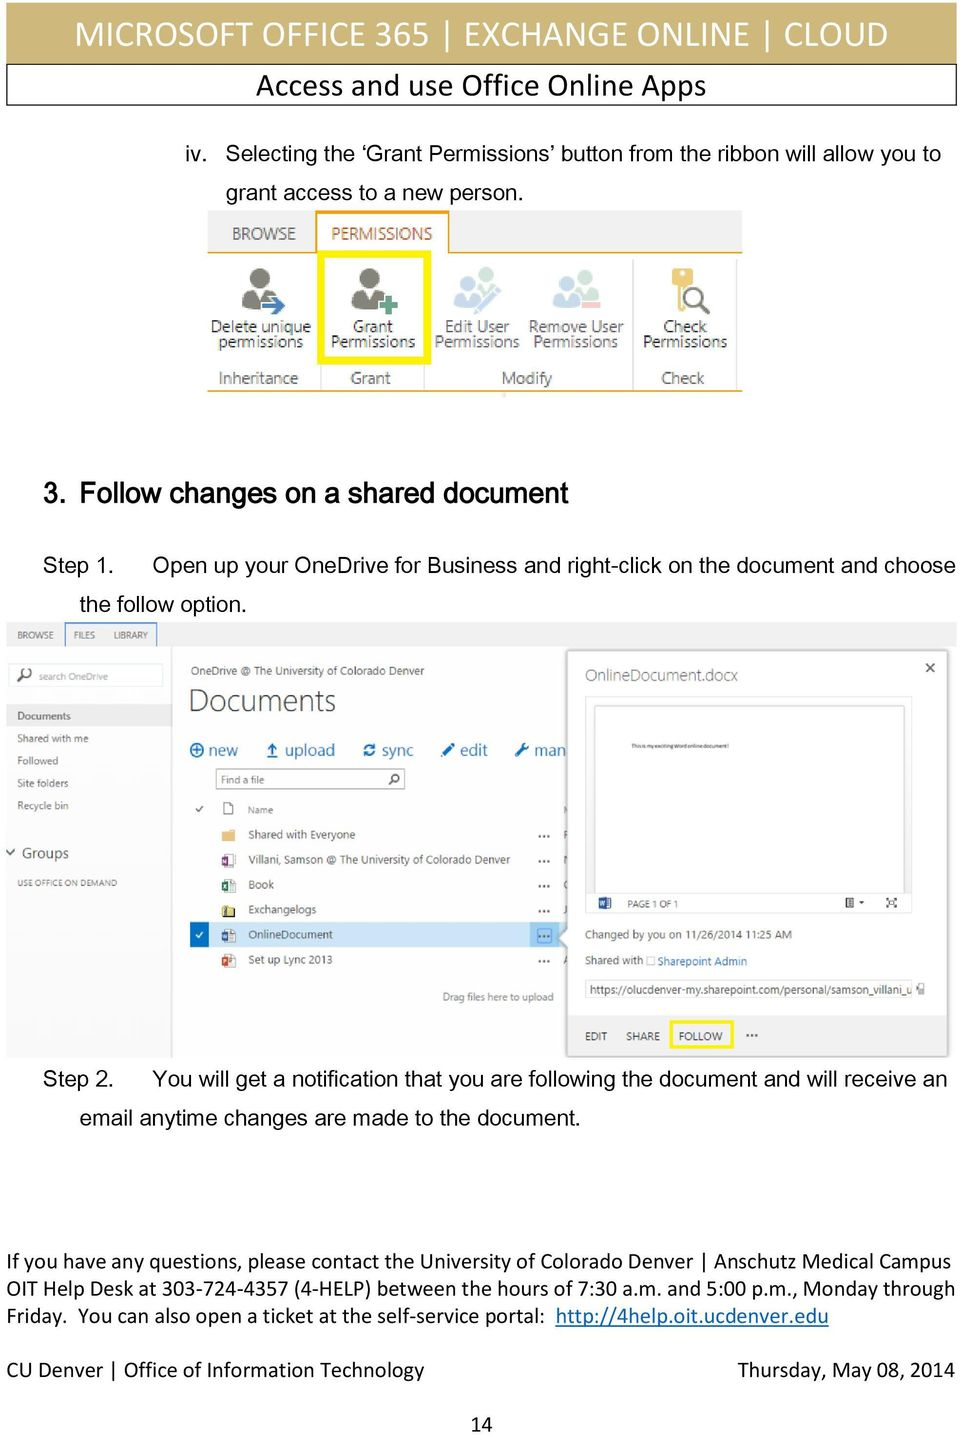 Open up your OneDrive for Business and right-click on the document and choose the follow option.